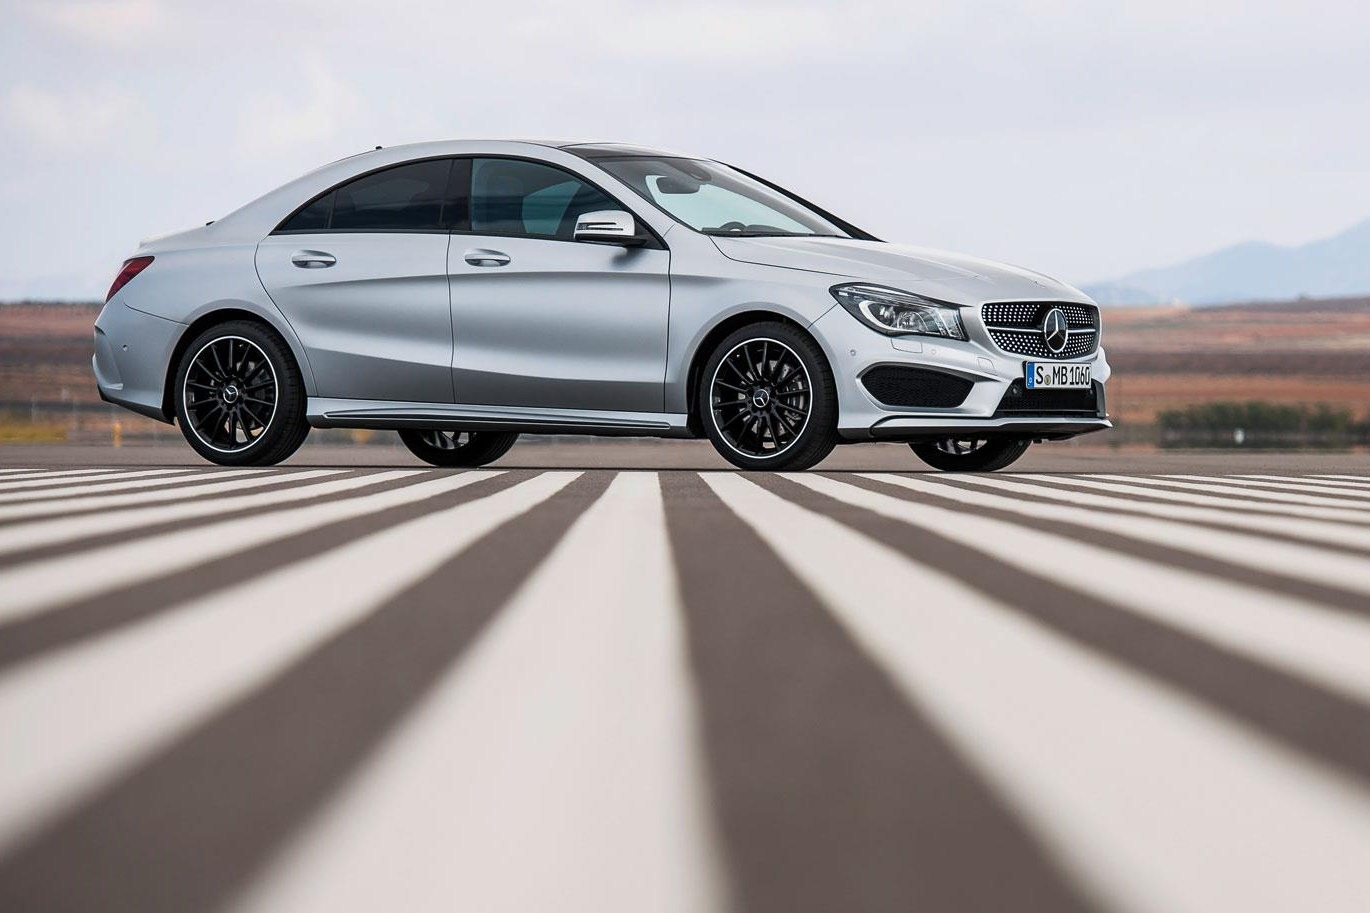 car design scoop scoop et dernieres infos automobile la nouvelle mercedes benz cla amg en image. Black Bedroom Furniture Sets. Home Design Ideas